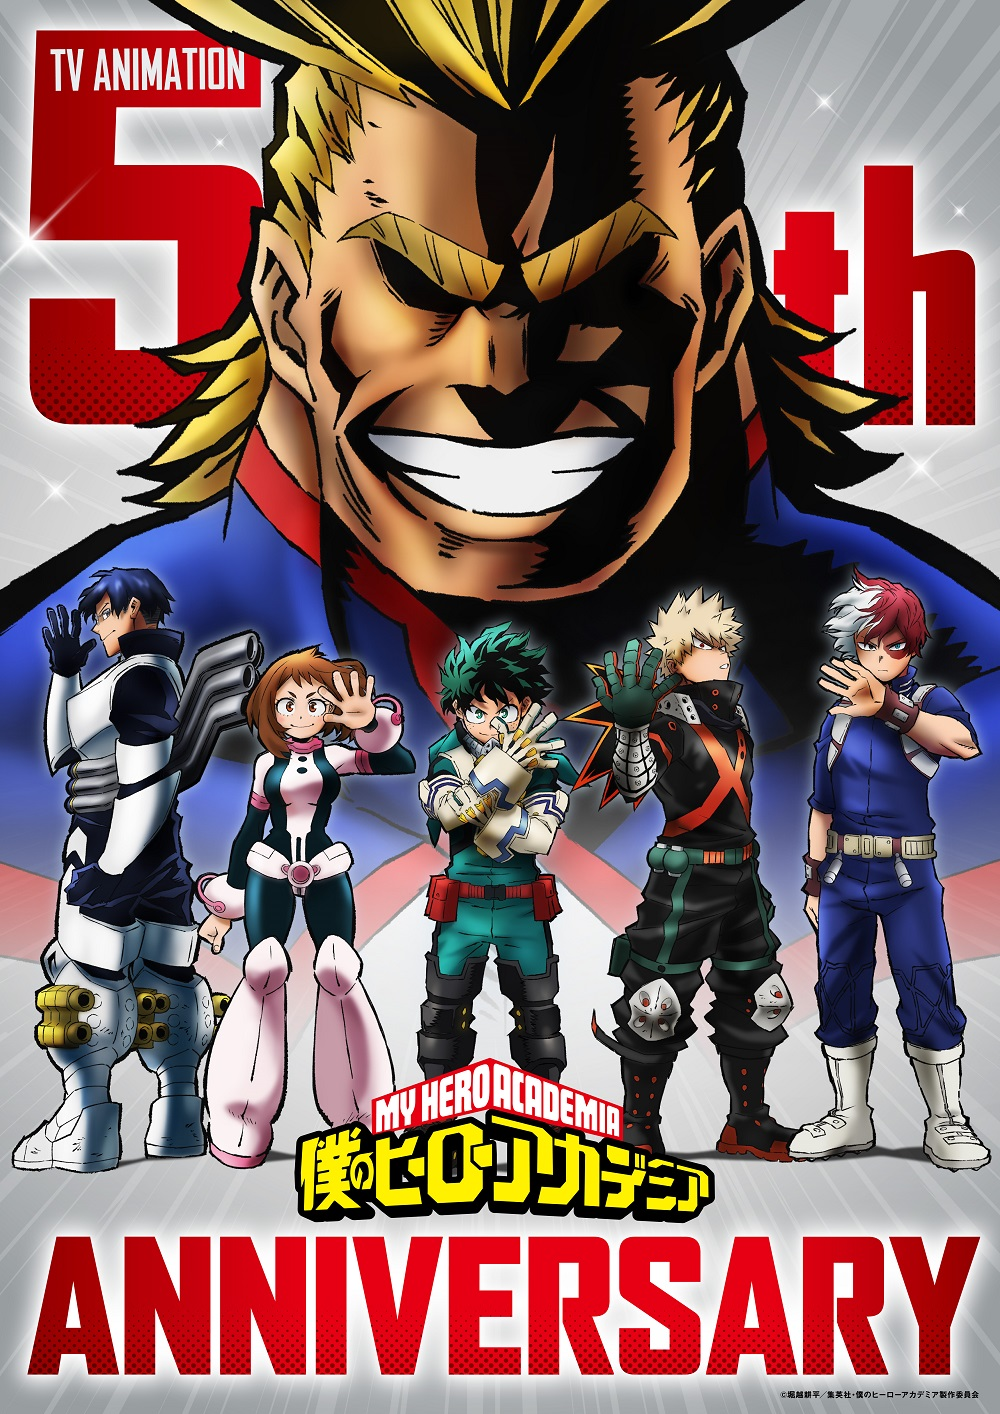 My Hero Academia 5to aniversario del anime visual